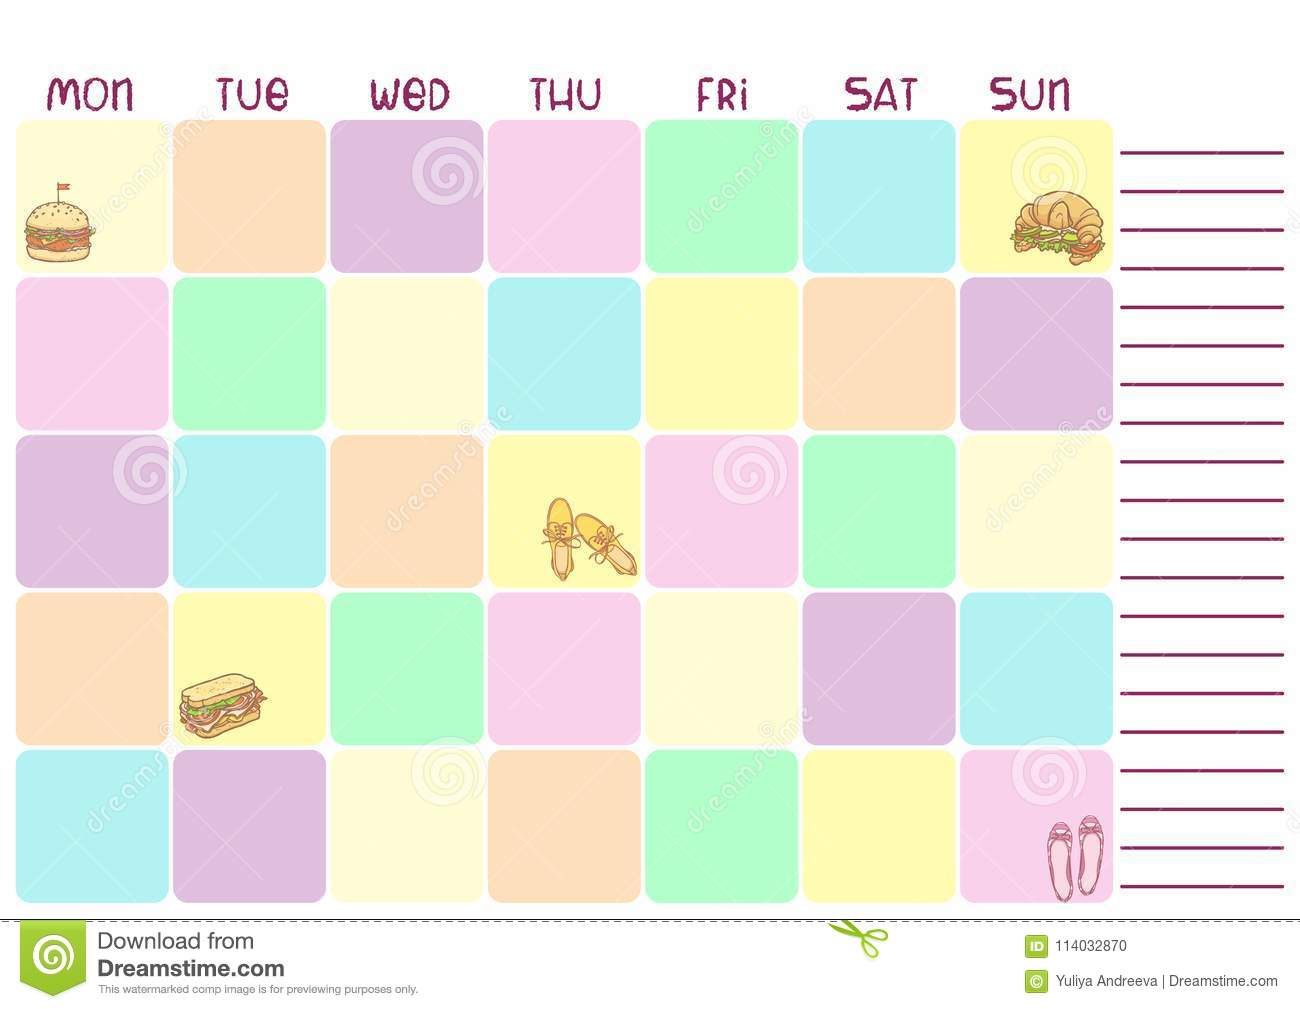 daily colorful planner for business or education with food illus